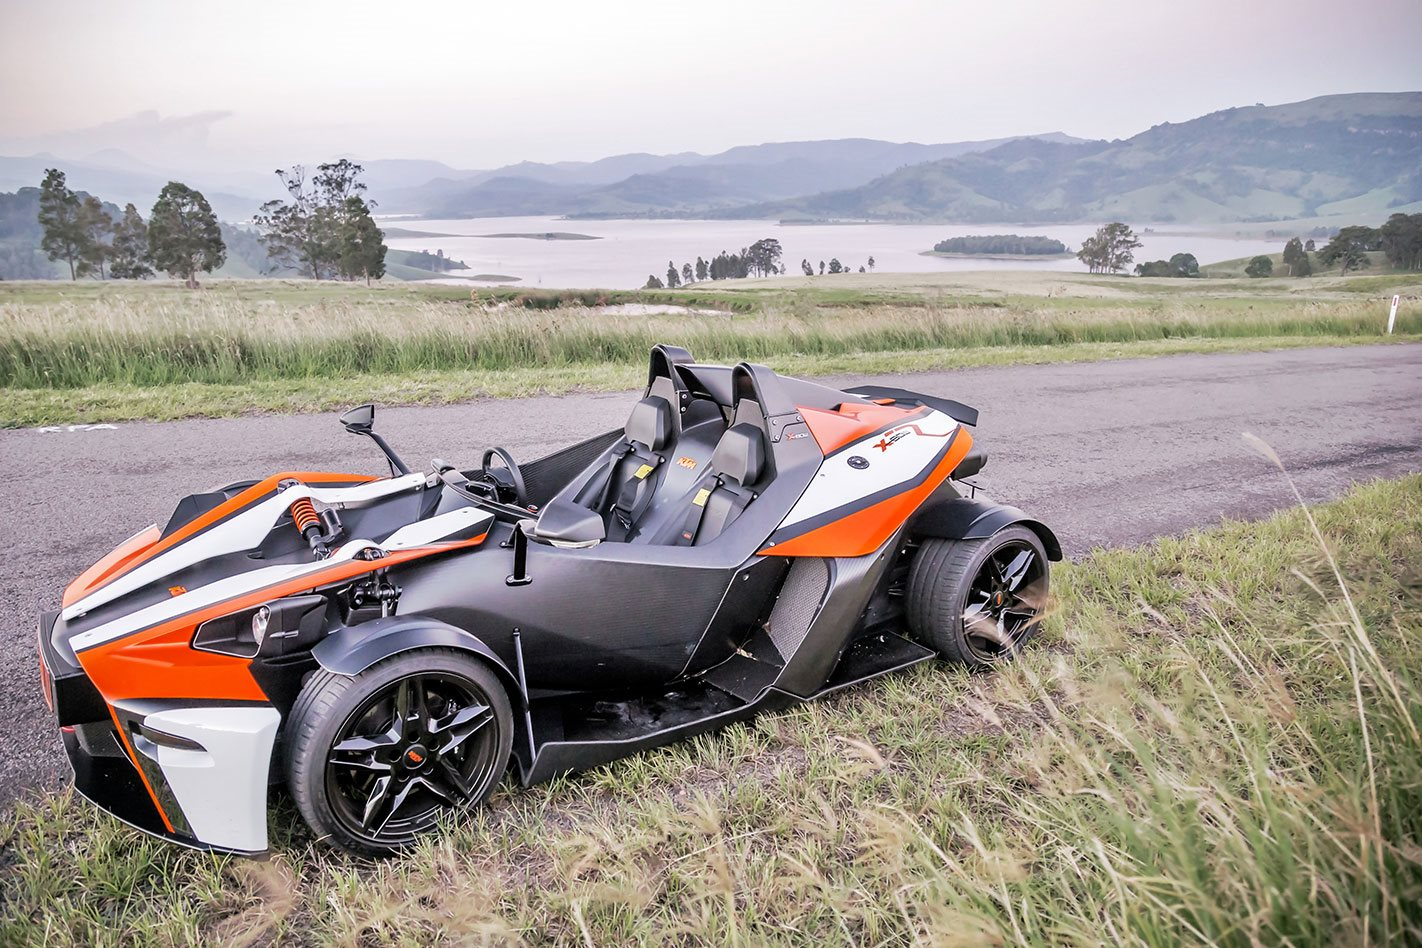 KTM X-BOW side profile